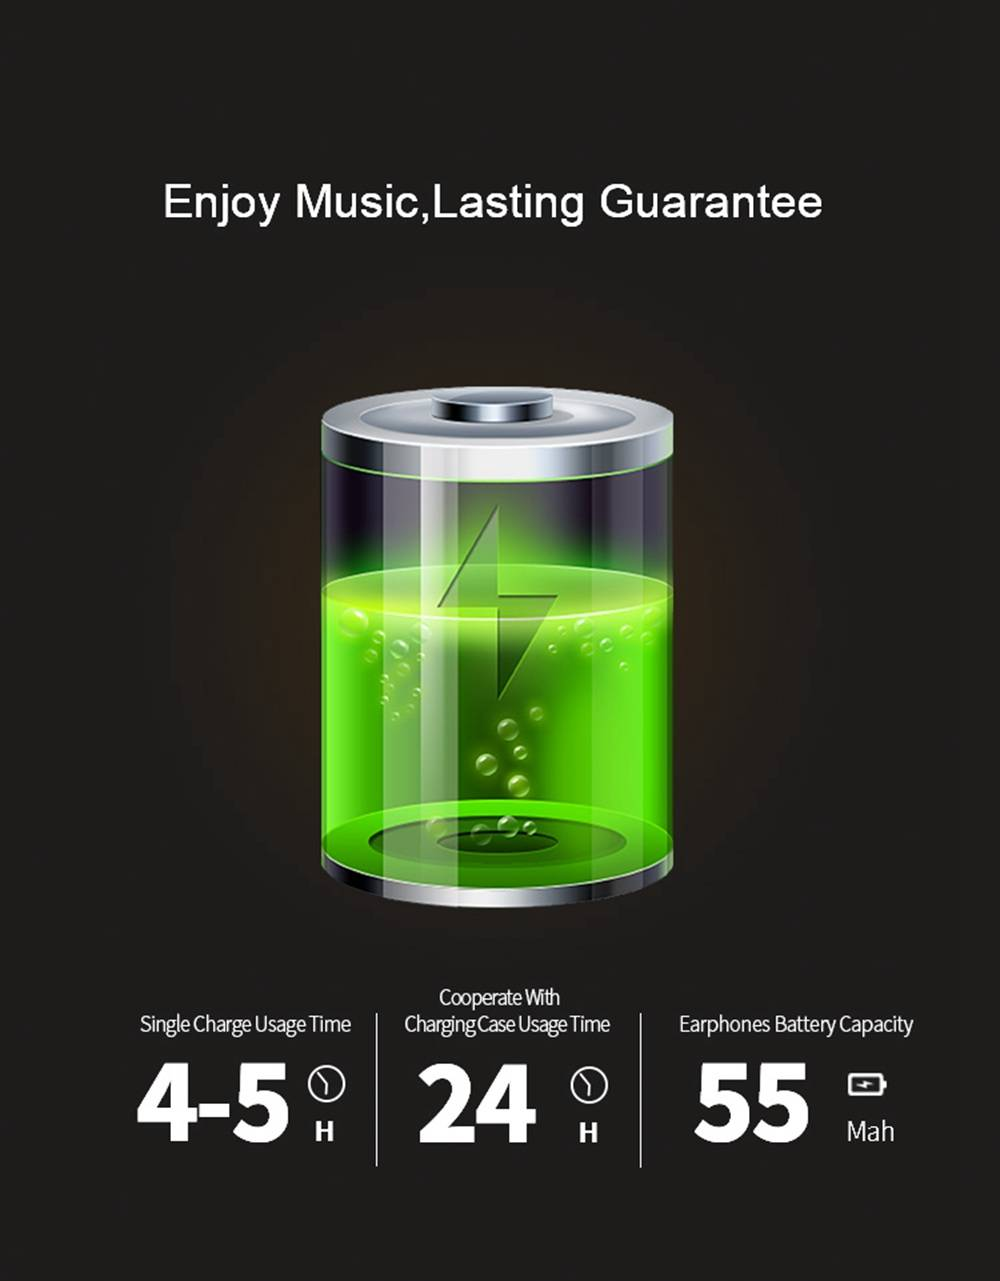 Myinnov MKJM6S Dual Bluetooth 5.0 Earbuds Touch Control About 8 Hours Working Time - Black